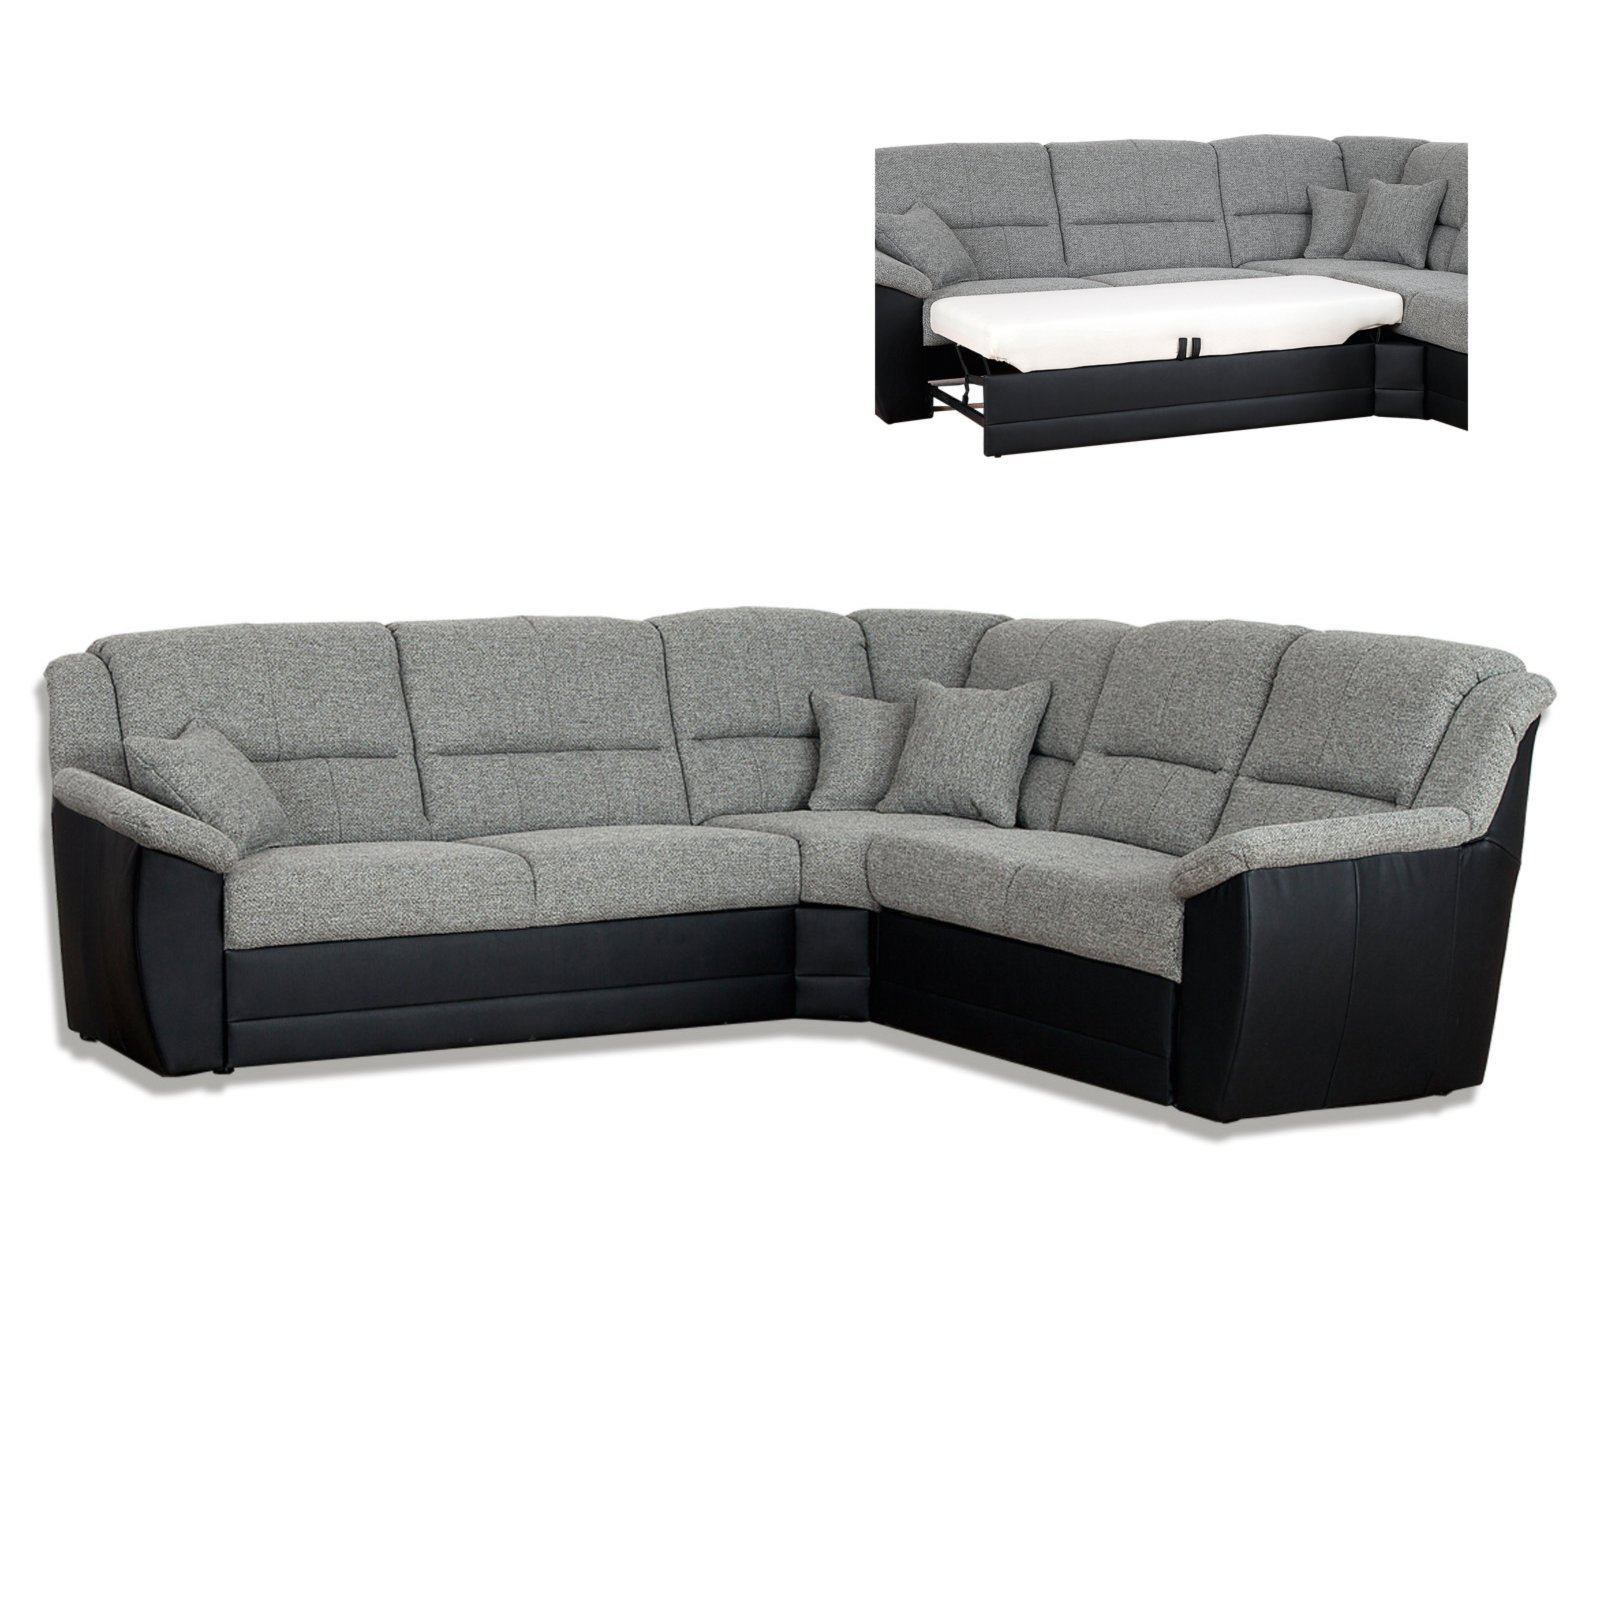 couch grau schwarz sofa modern stoff grau funvitcom treppe eiche sgerau with couch grau schwarz. Black Bedroom Furniture Sets. Home Design Ideas